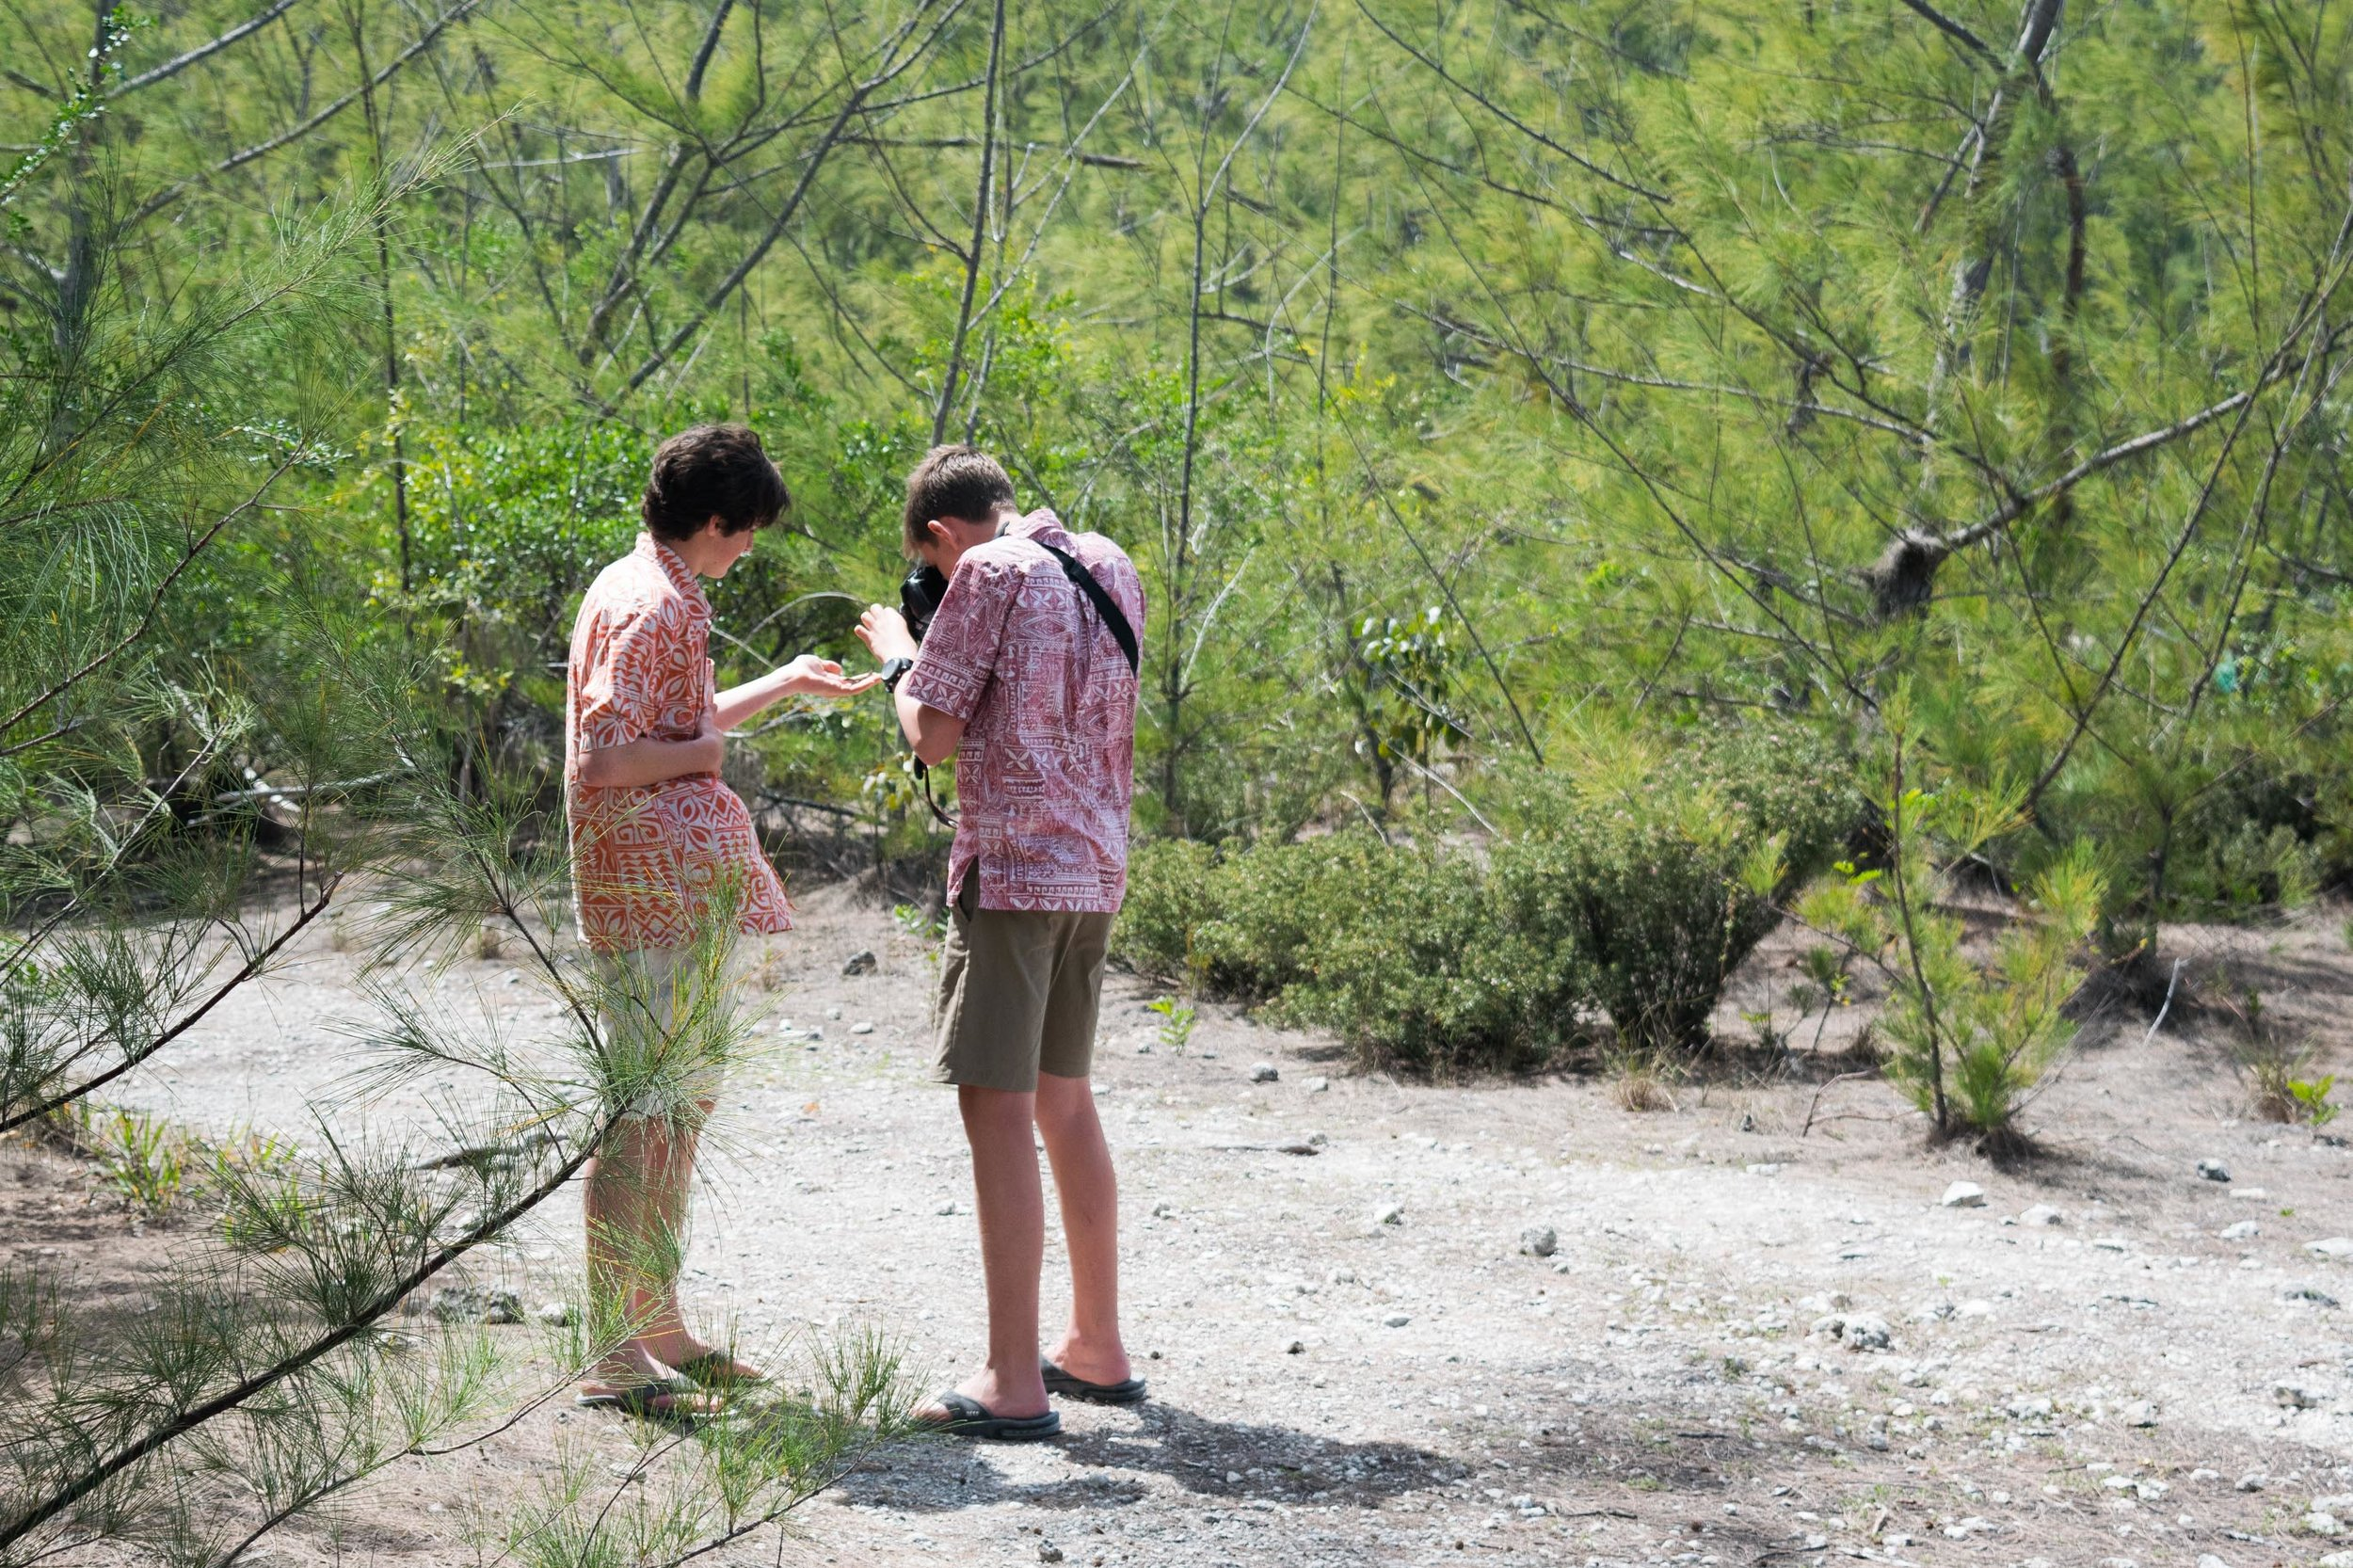 Students Sawyer and Patrick getting up close with a lizard.